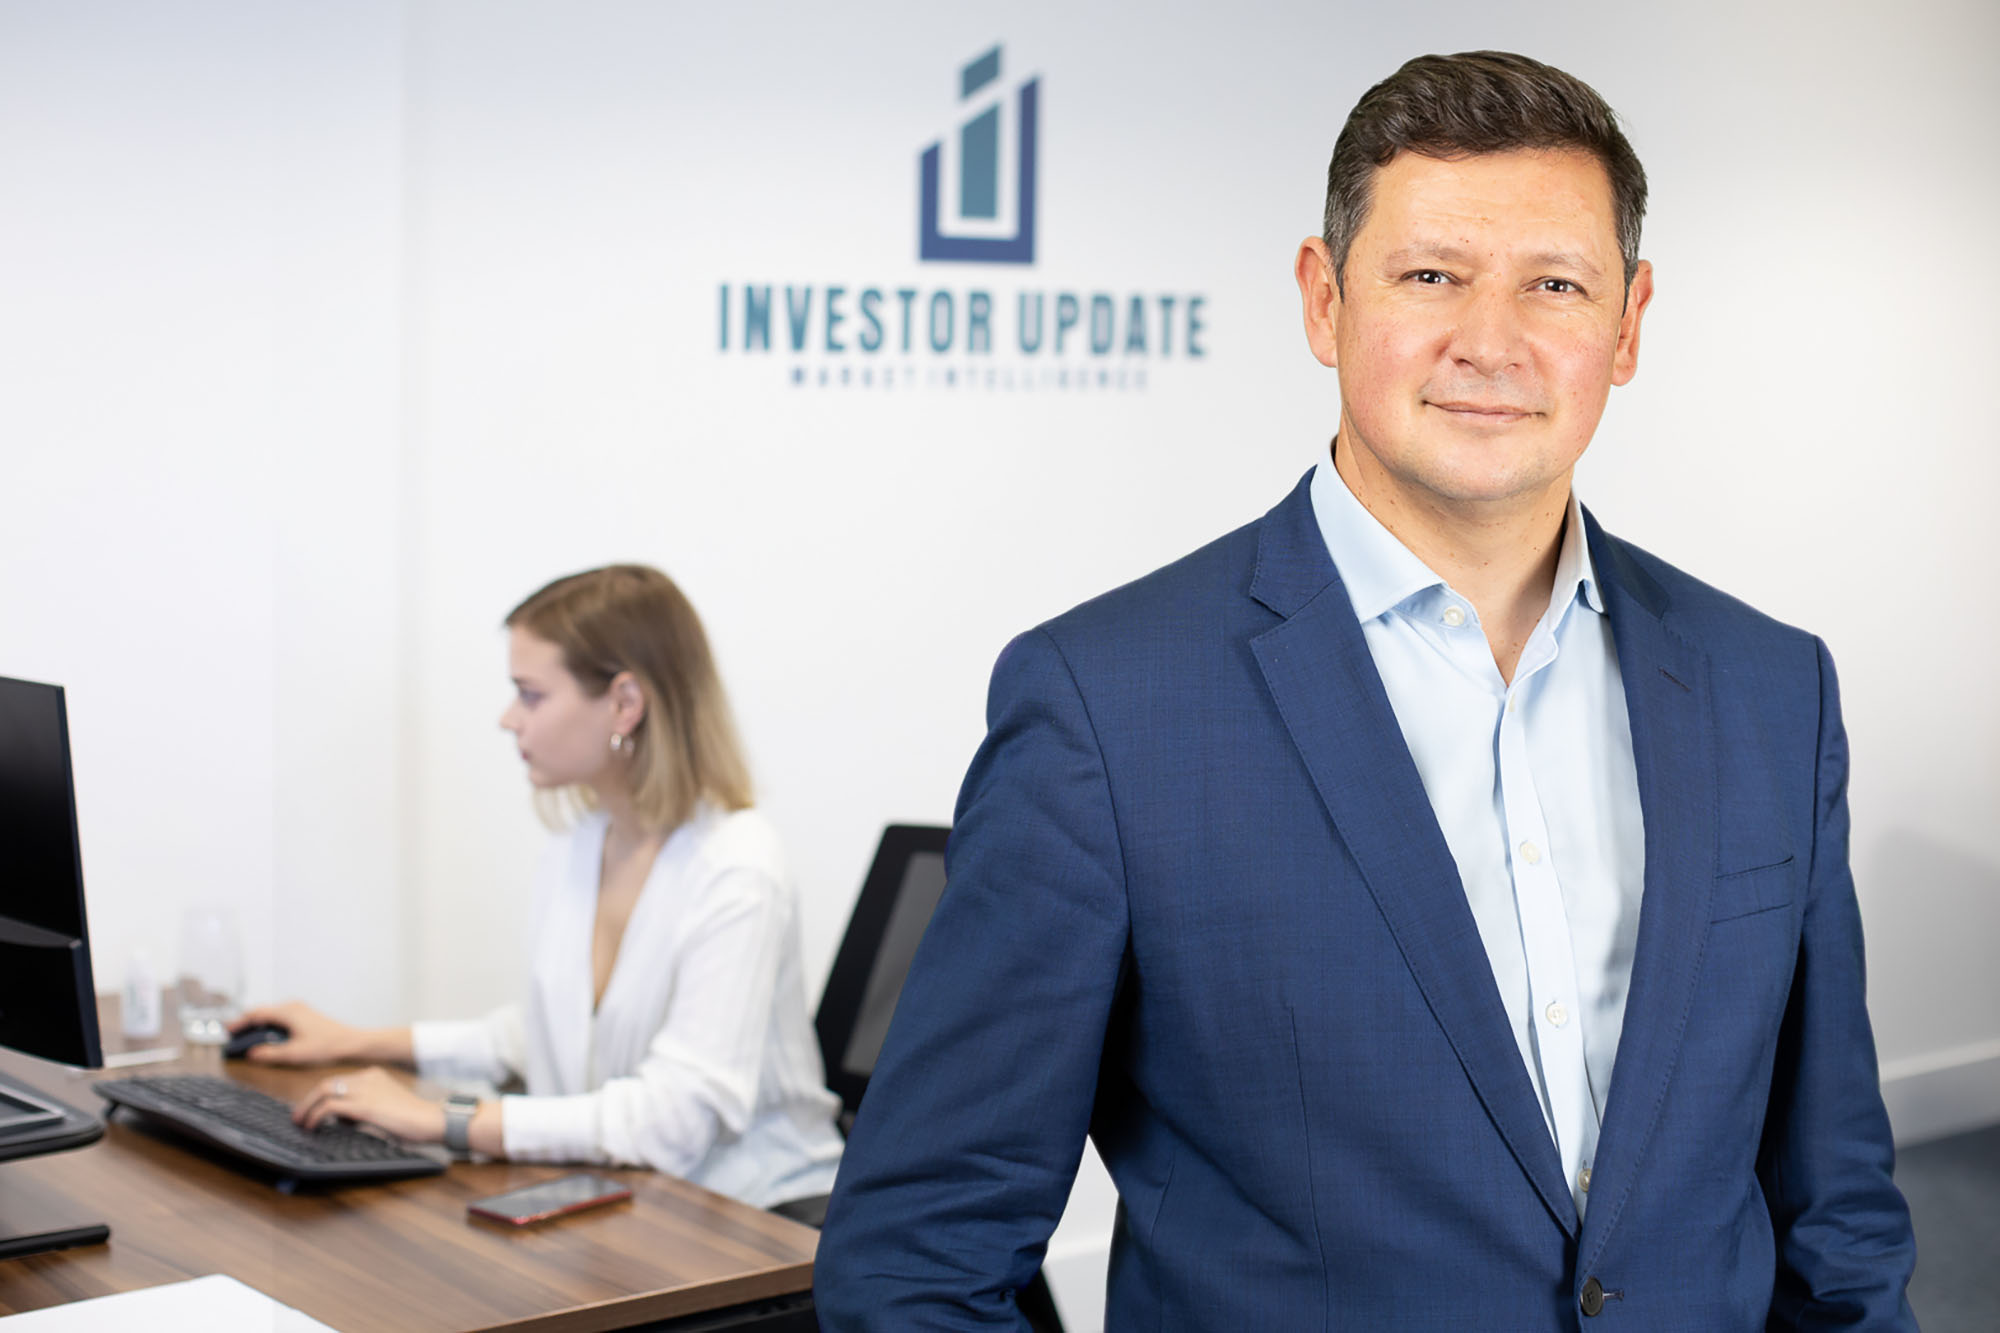 Andrew Archer joins Investor Update, adding to our wealth of experience